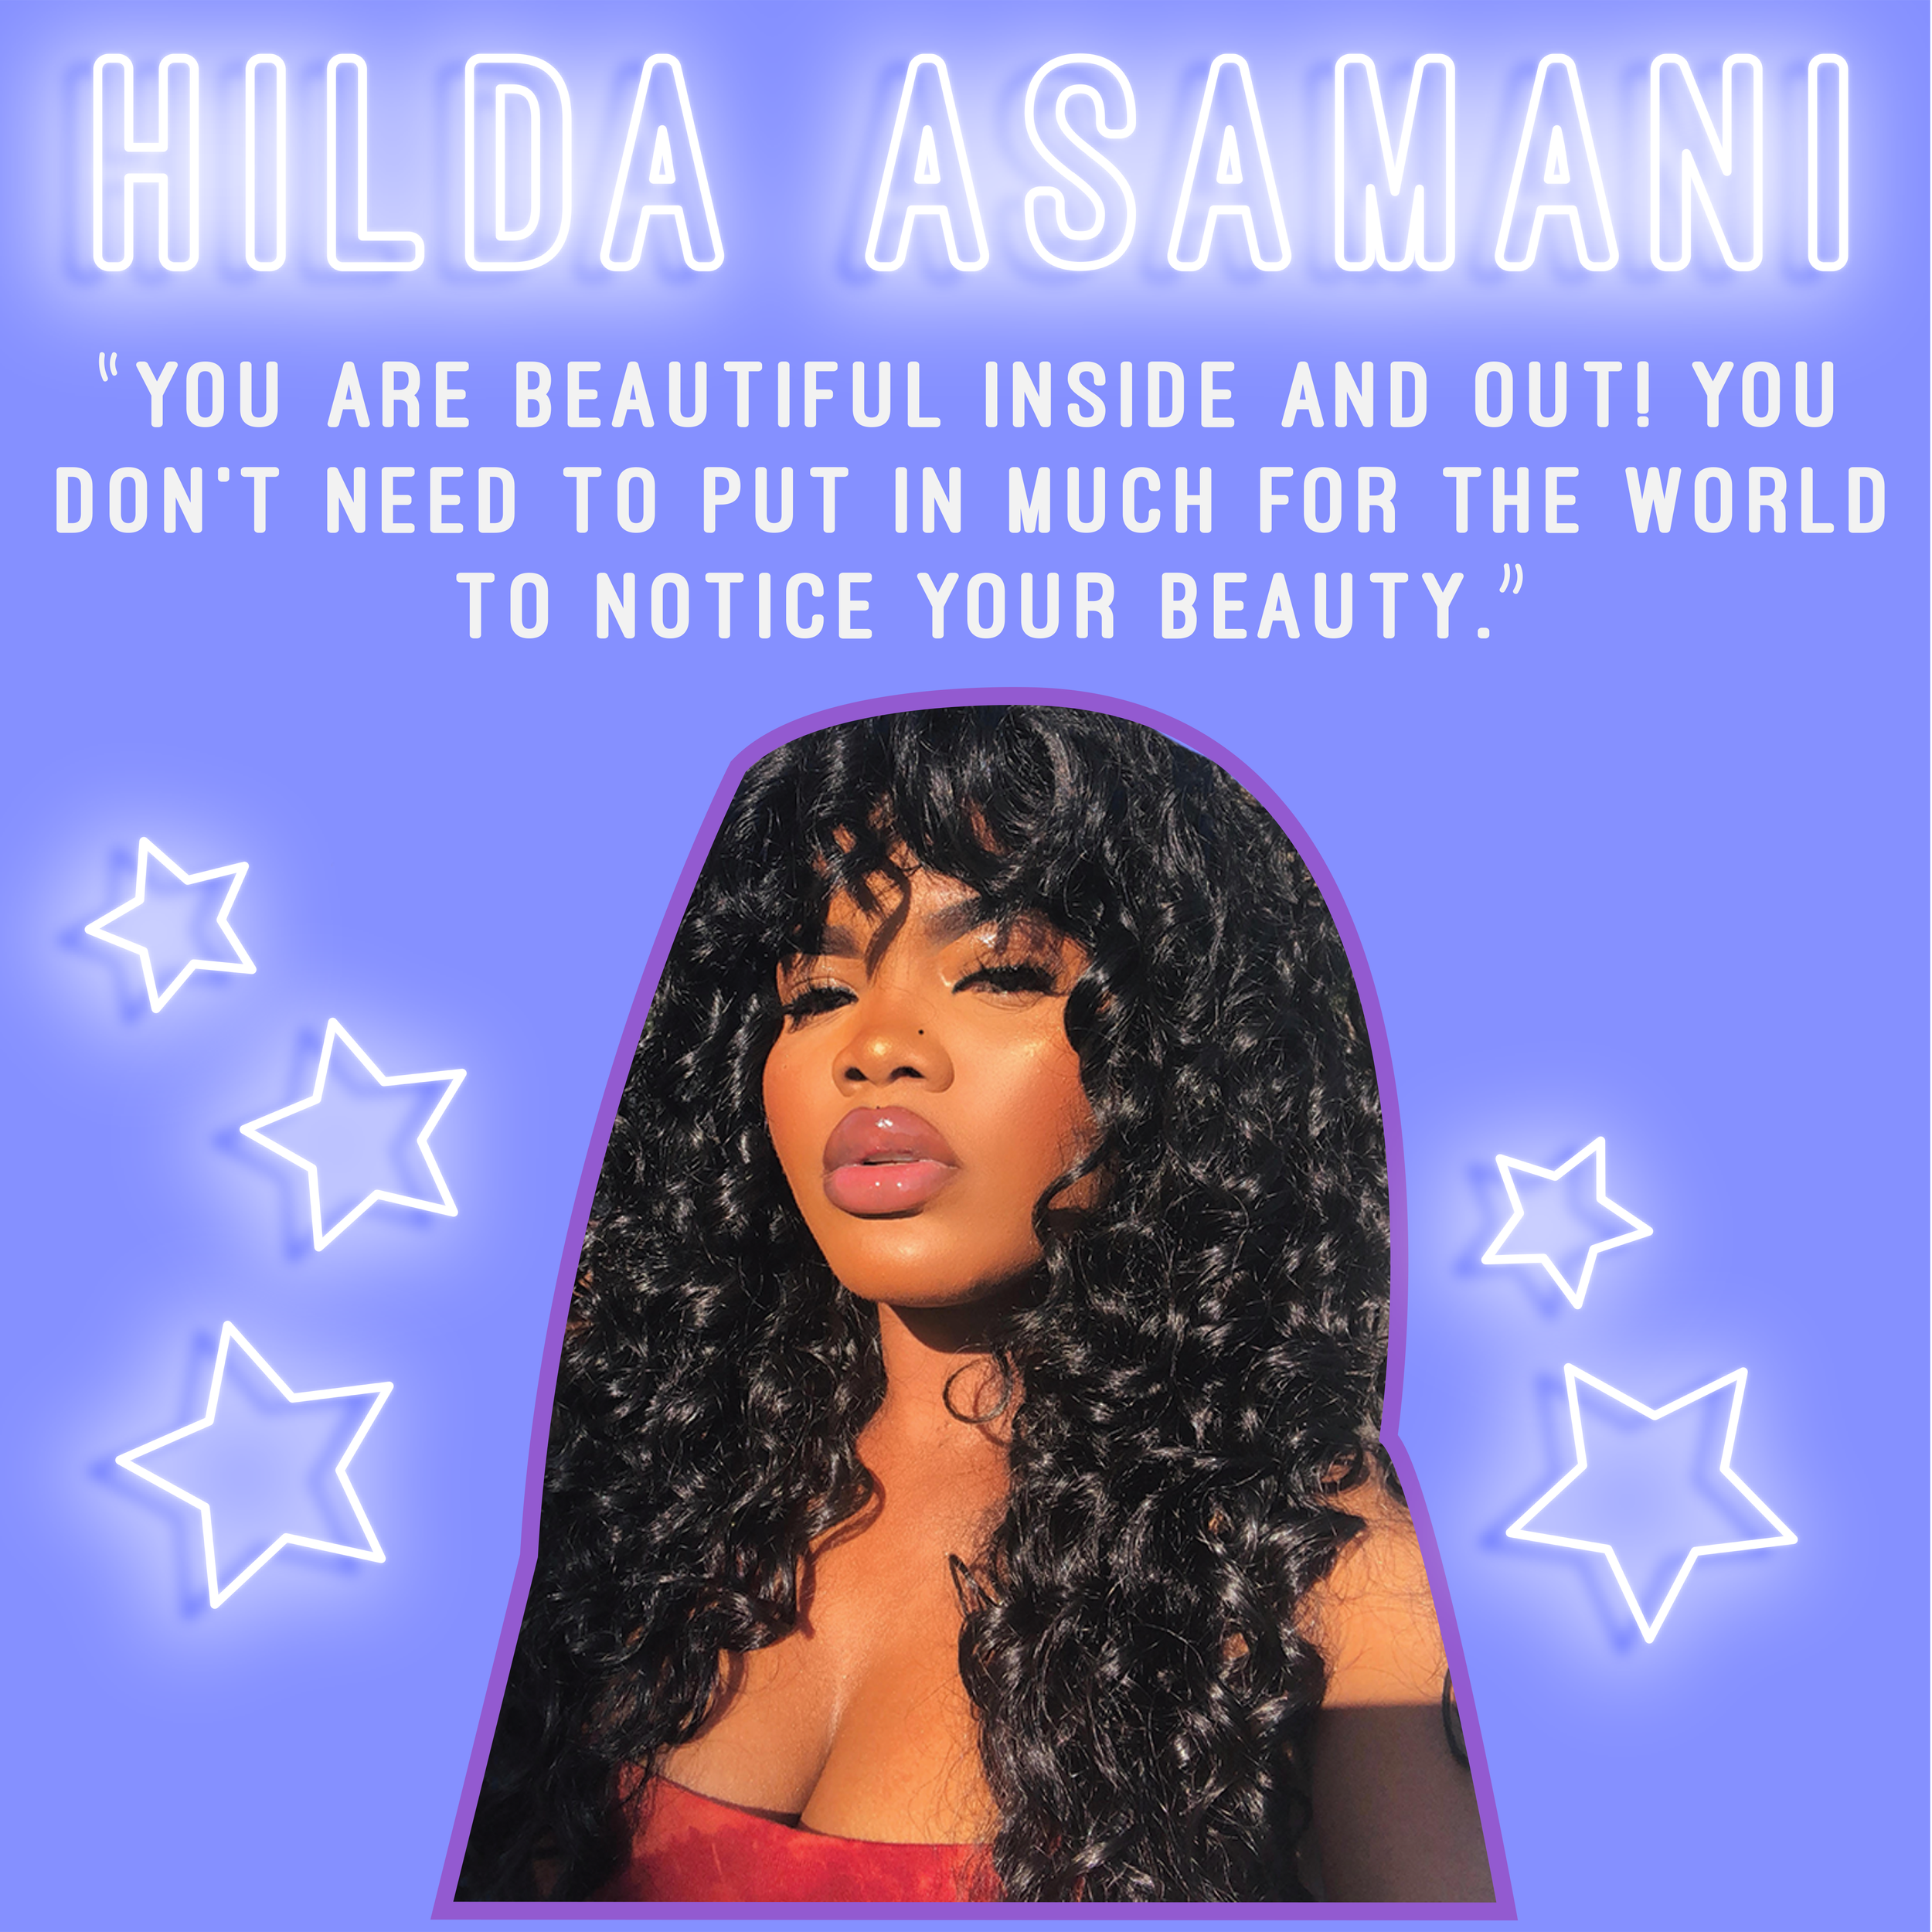 """""""You are BEAUTIFUL inside out and you don't need to put in much for the world to notice or acknowledge your BEAUTY OR SKIN. My holy grail beauty product for all women of color: Lipglosses because I believe it completes every look without any effort at all Skincare wise, I would recommend every woman of color to at least own a VITAMIN E oil because it is essential, and also contributes to a healthy looking skin, which basically gives the appearance of a glowy melanin skin.""""-  @Hilldarh"""